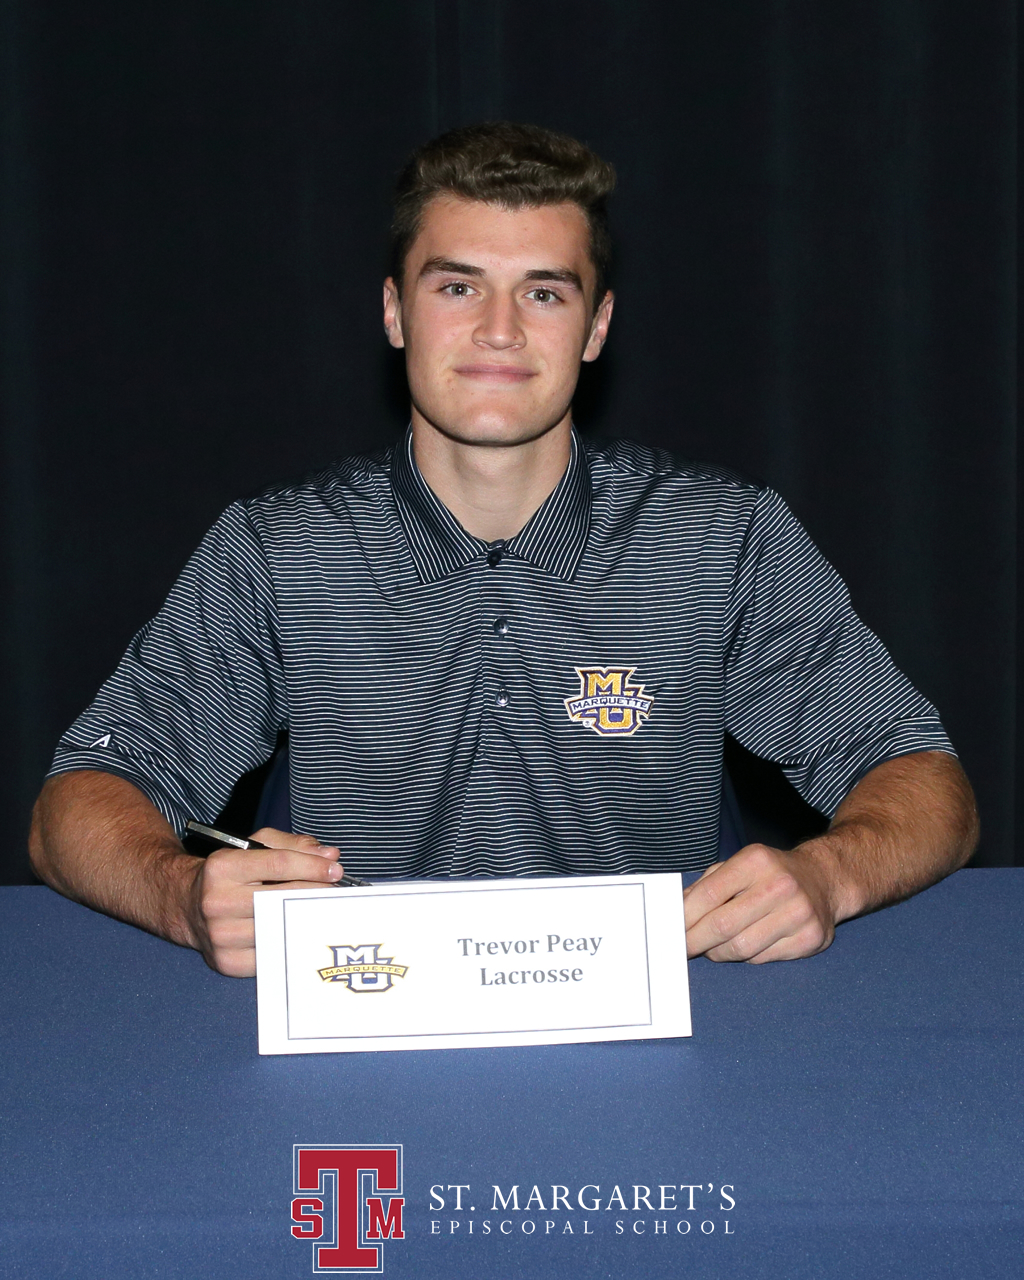 Trevor Peay signed to play lacrosse for Marquette University. Photo: Courtesy